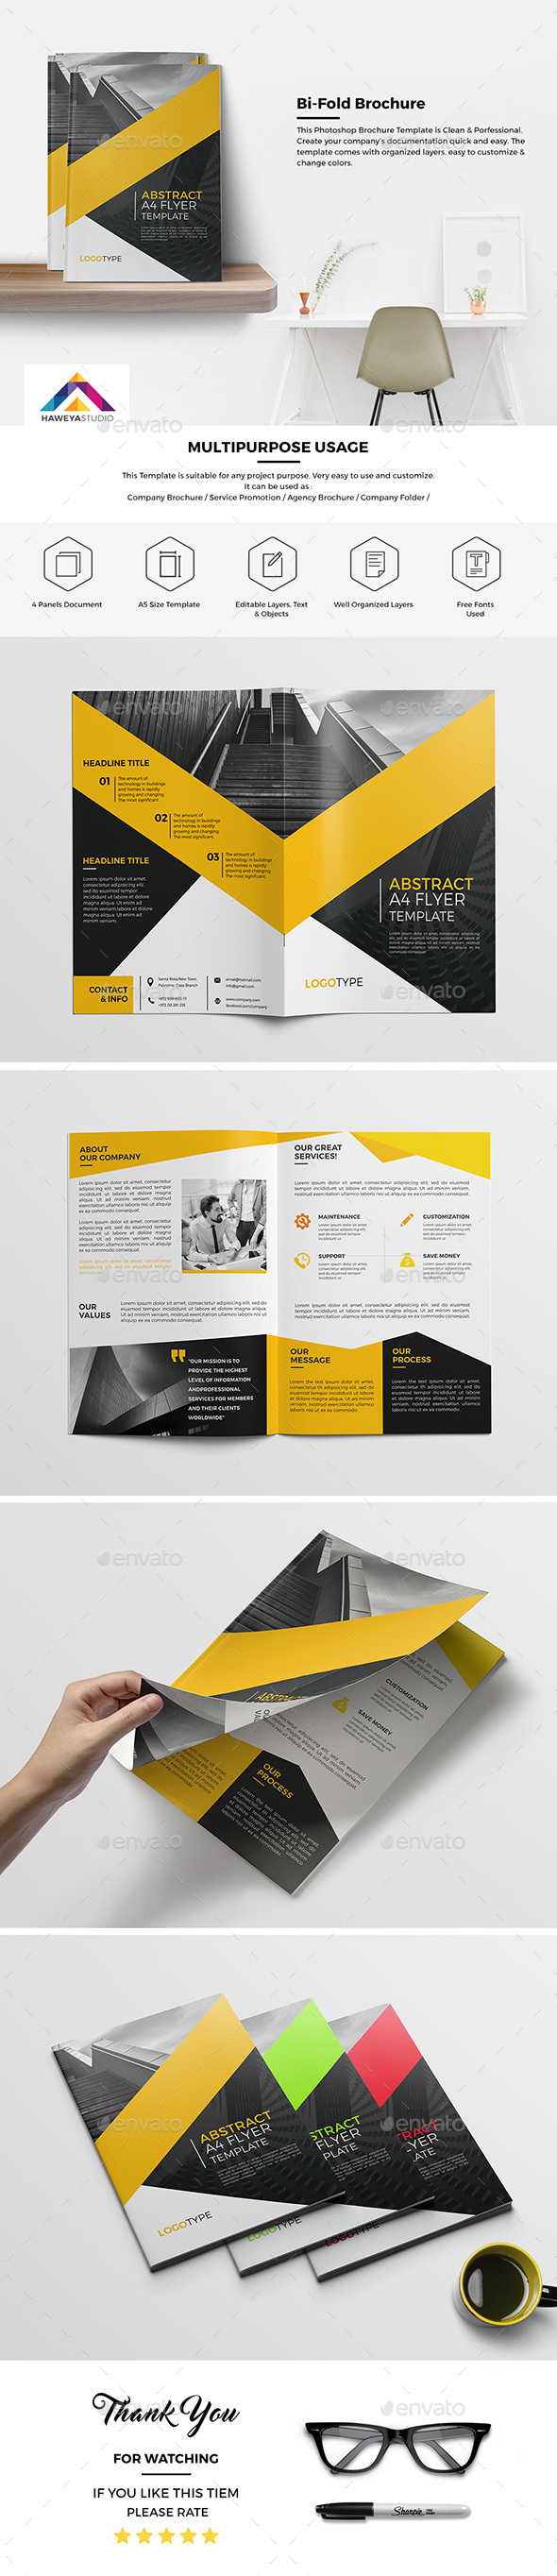 Haweya Bi-Fold Brochure 04  - Corporate Brochures